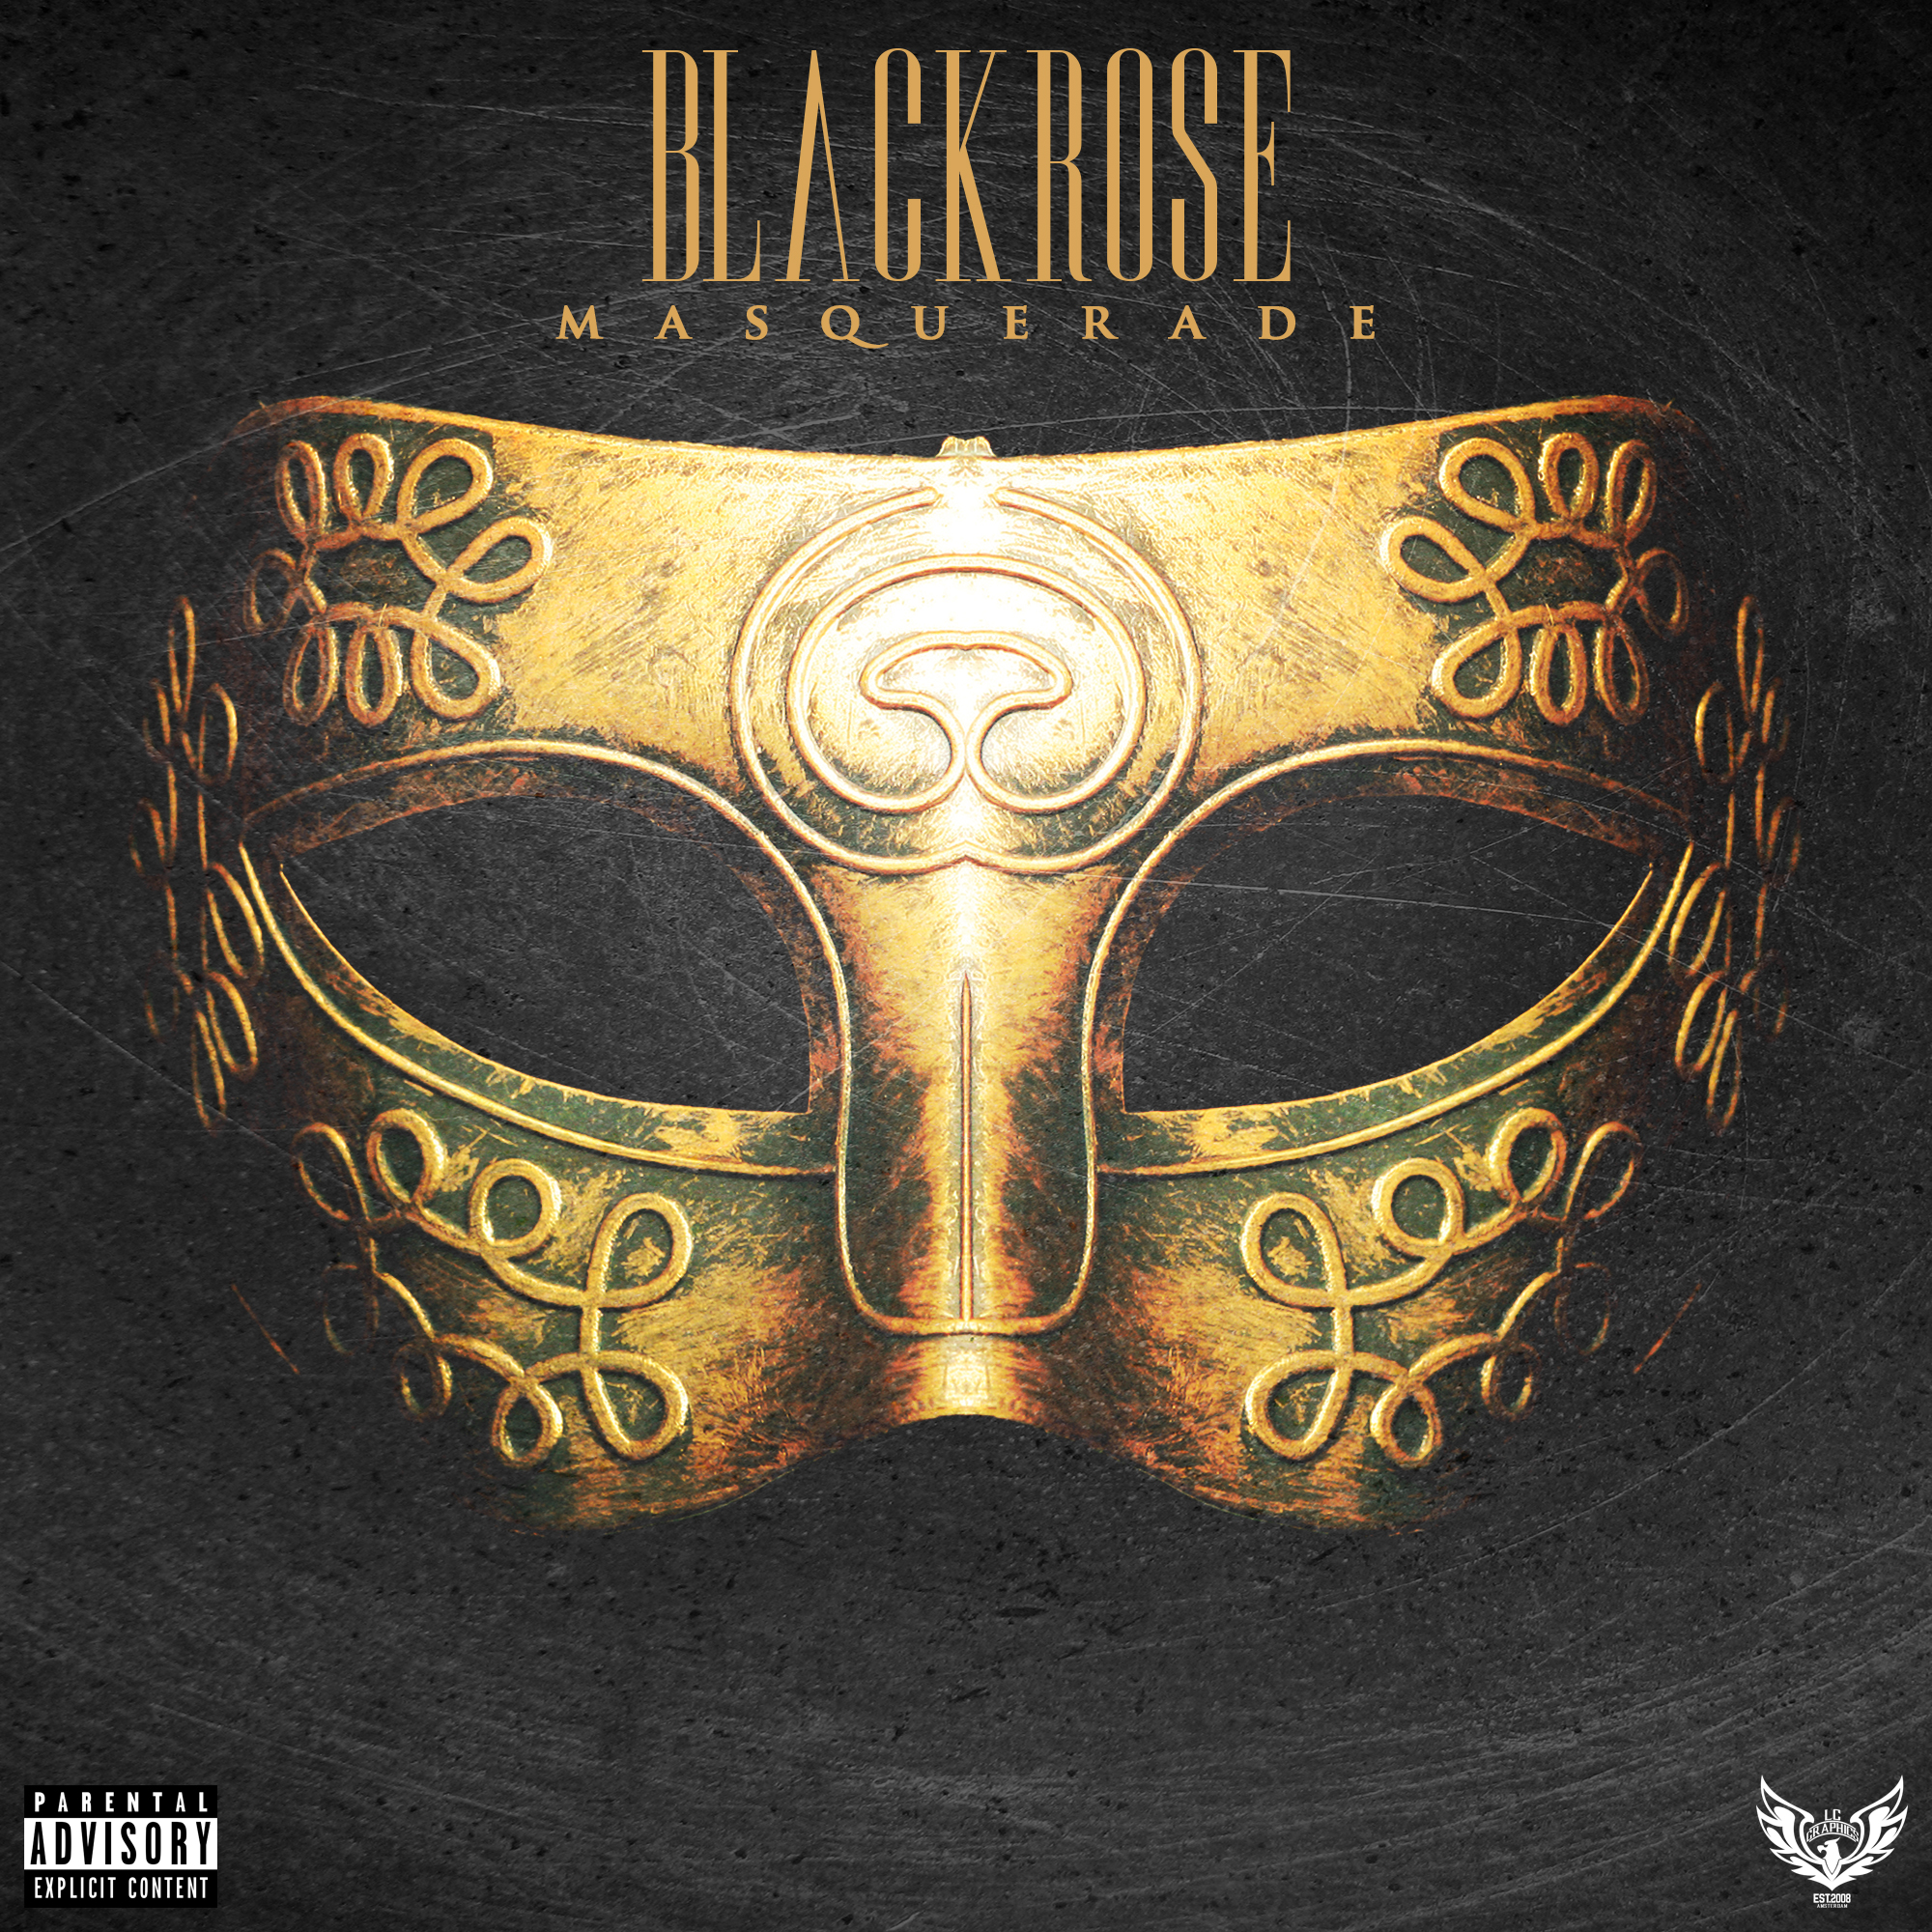 Blvck Rose - Masquerade cover art (byLCGraphics)